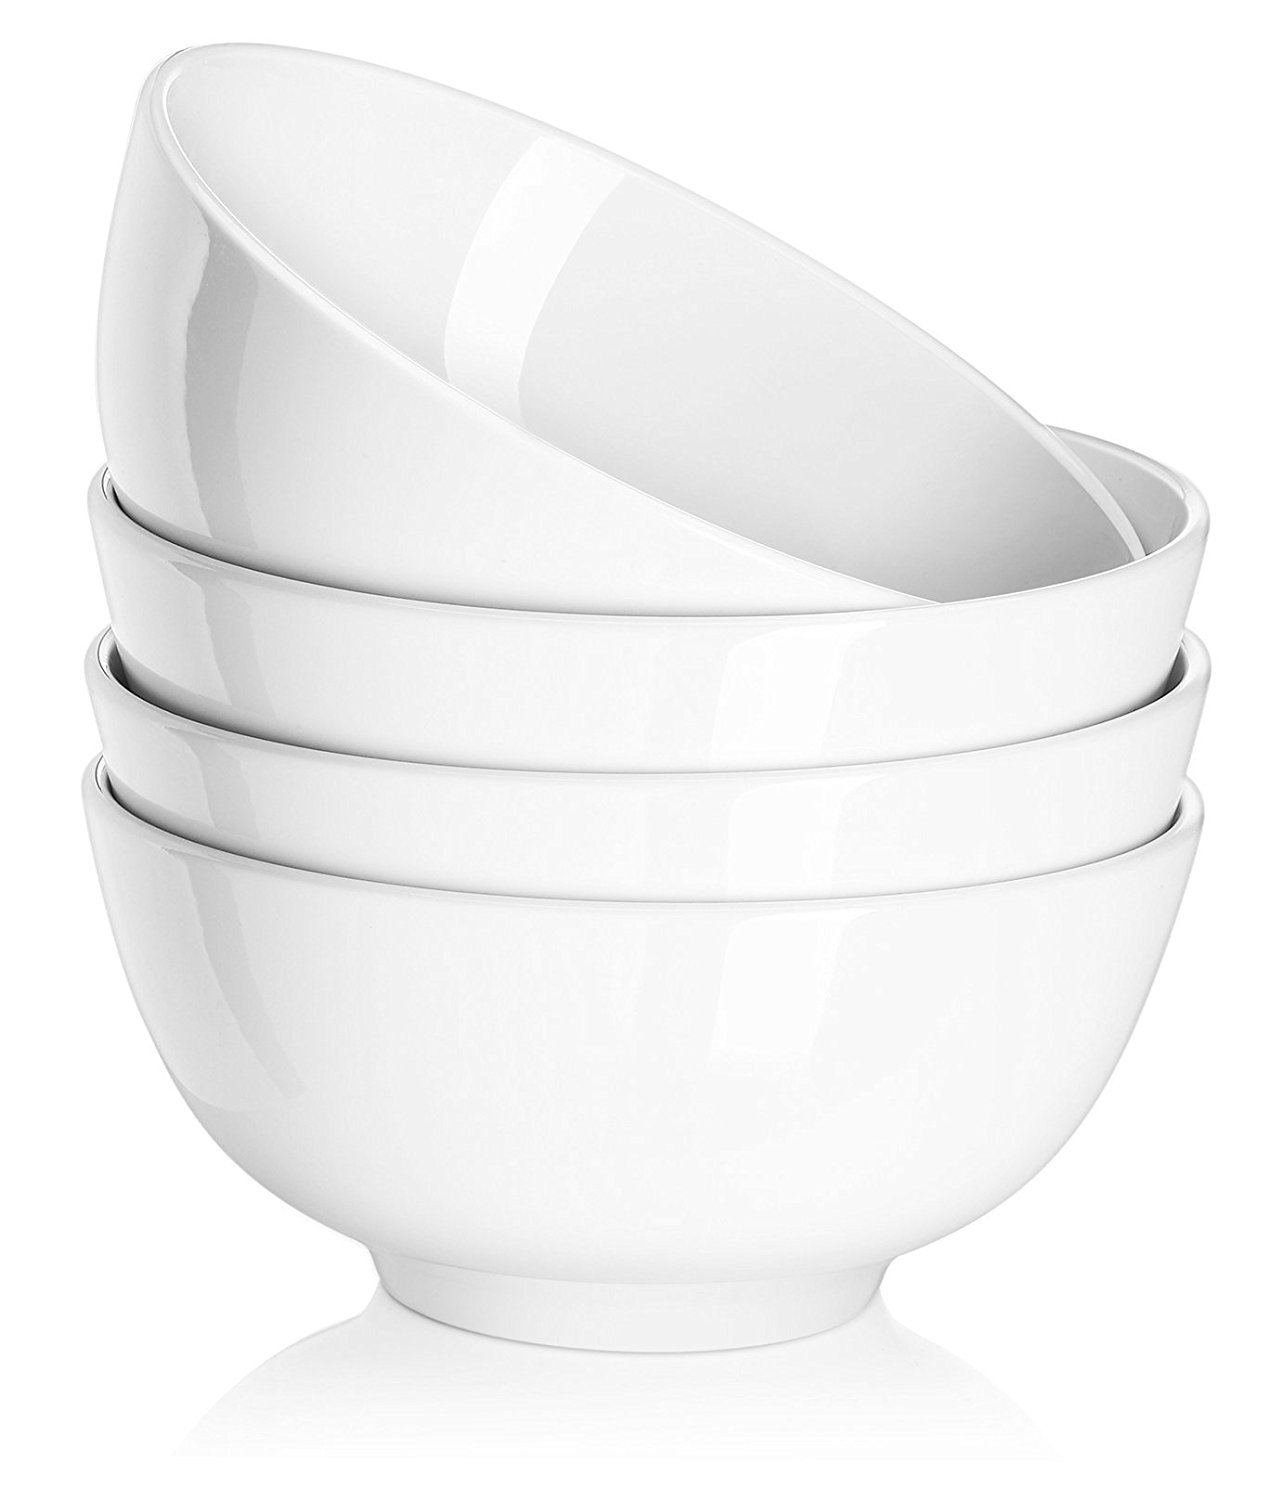 DOWAN 29 Ounce Porcelain Soup and Cereal Bowls, 4 Packs, White